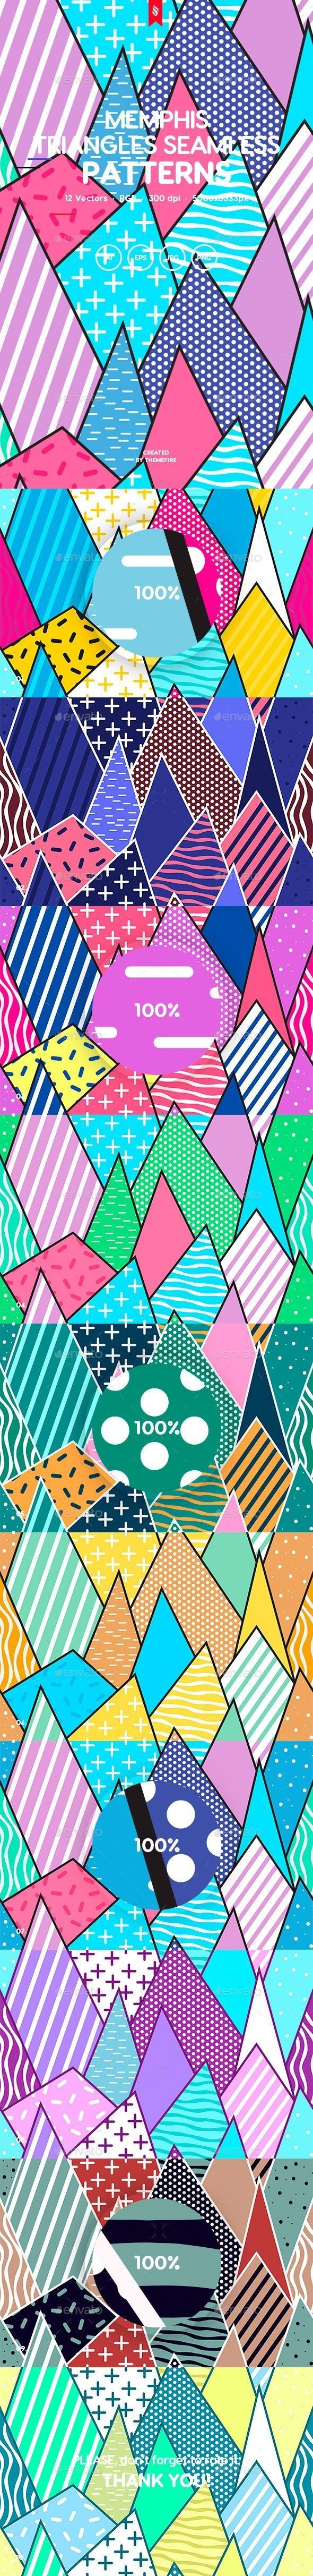 80s background Memphis Triangles Seamless Patterns. Professionally designed pattern background. #background #design #DigitalArt #pattern #80s #abstract #backdrops #backgrounds #bright #composition #creative #decoration #decorative #doodle #fashion #fun #geometric #graphics #illustrations #memphis #modern #patterns #PopArt #repeat #retro #seamless #shapes #style #stylish #surfaces #textures #triangles #vintage #wallpaper<br>